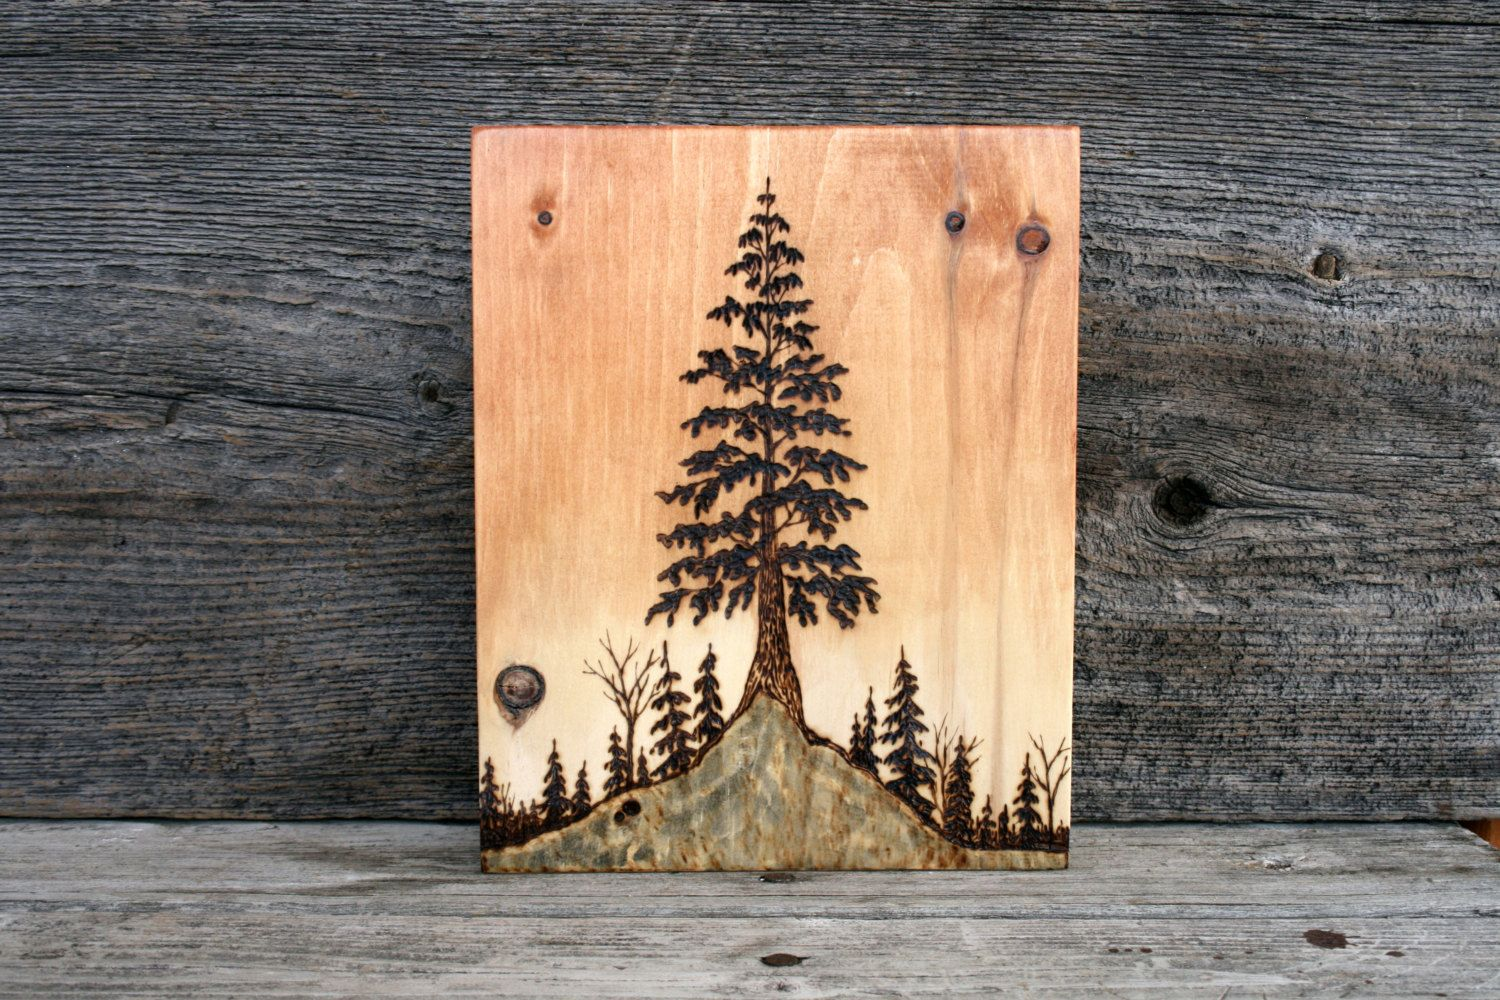 Tree At Sunset Wood Burning Art Tree By Twigsandblossoms